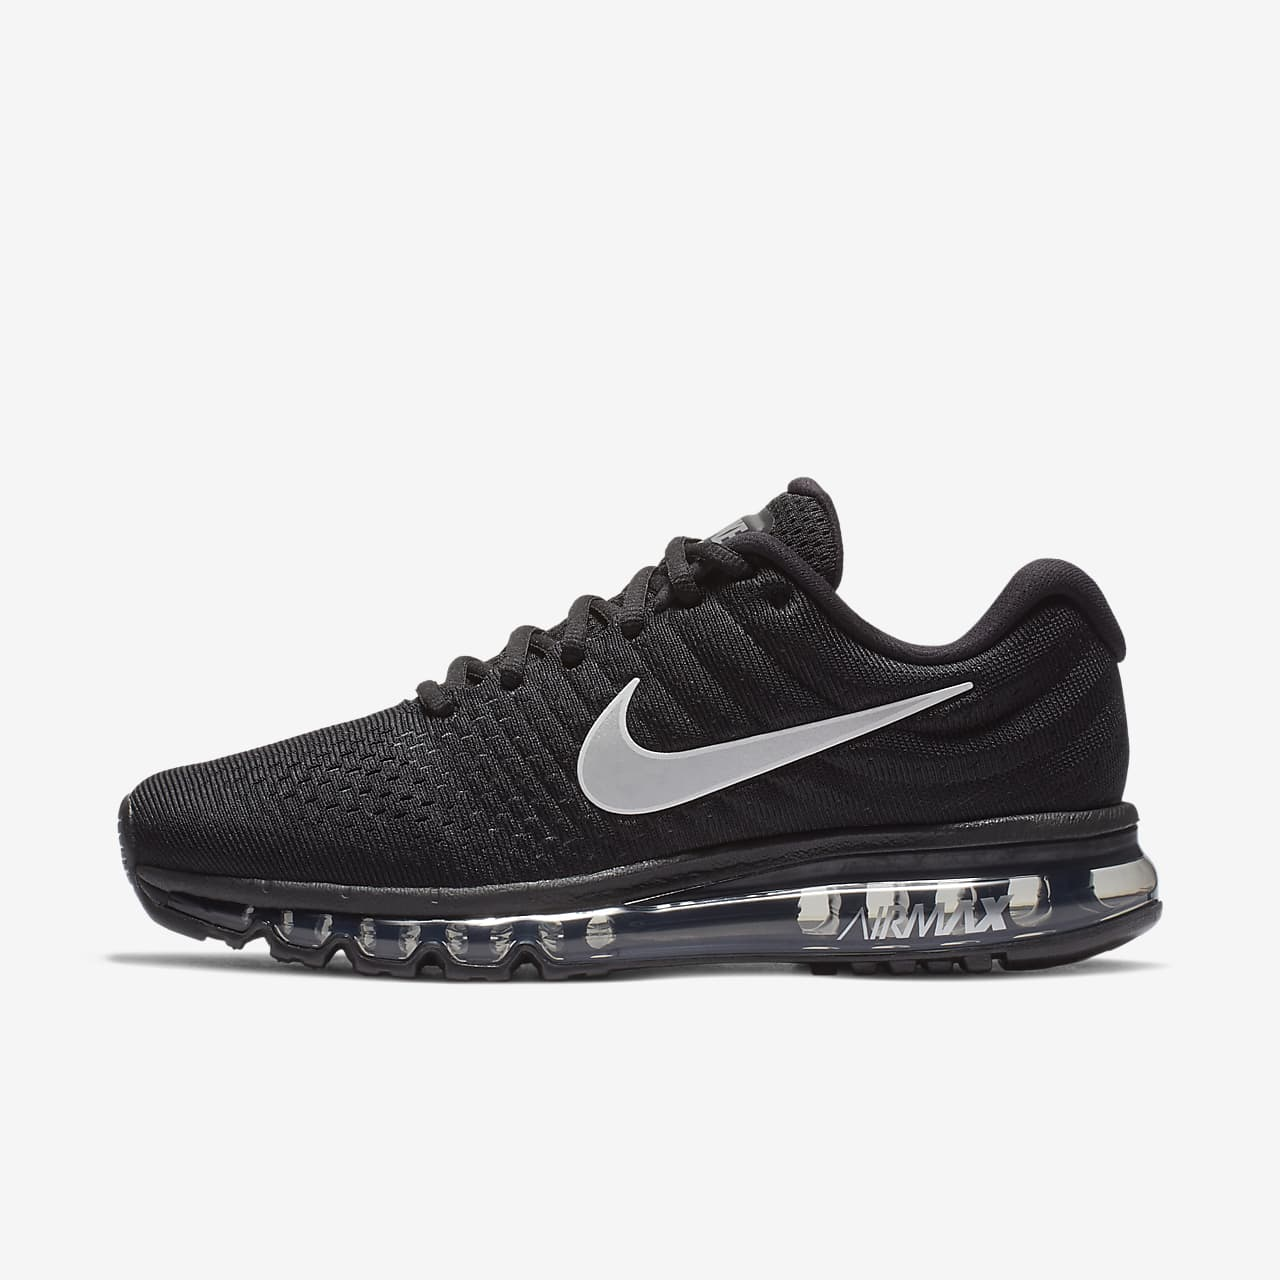 nike air max 2017 men's running trainers shoes